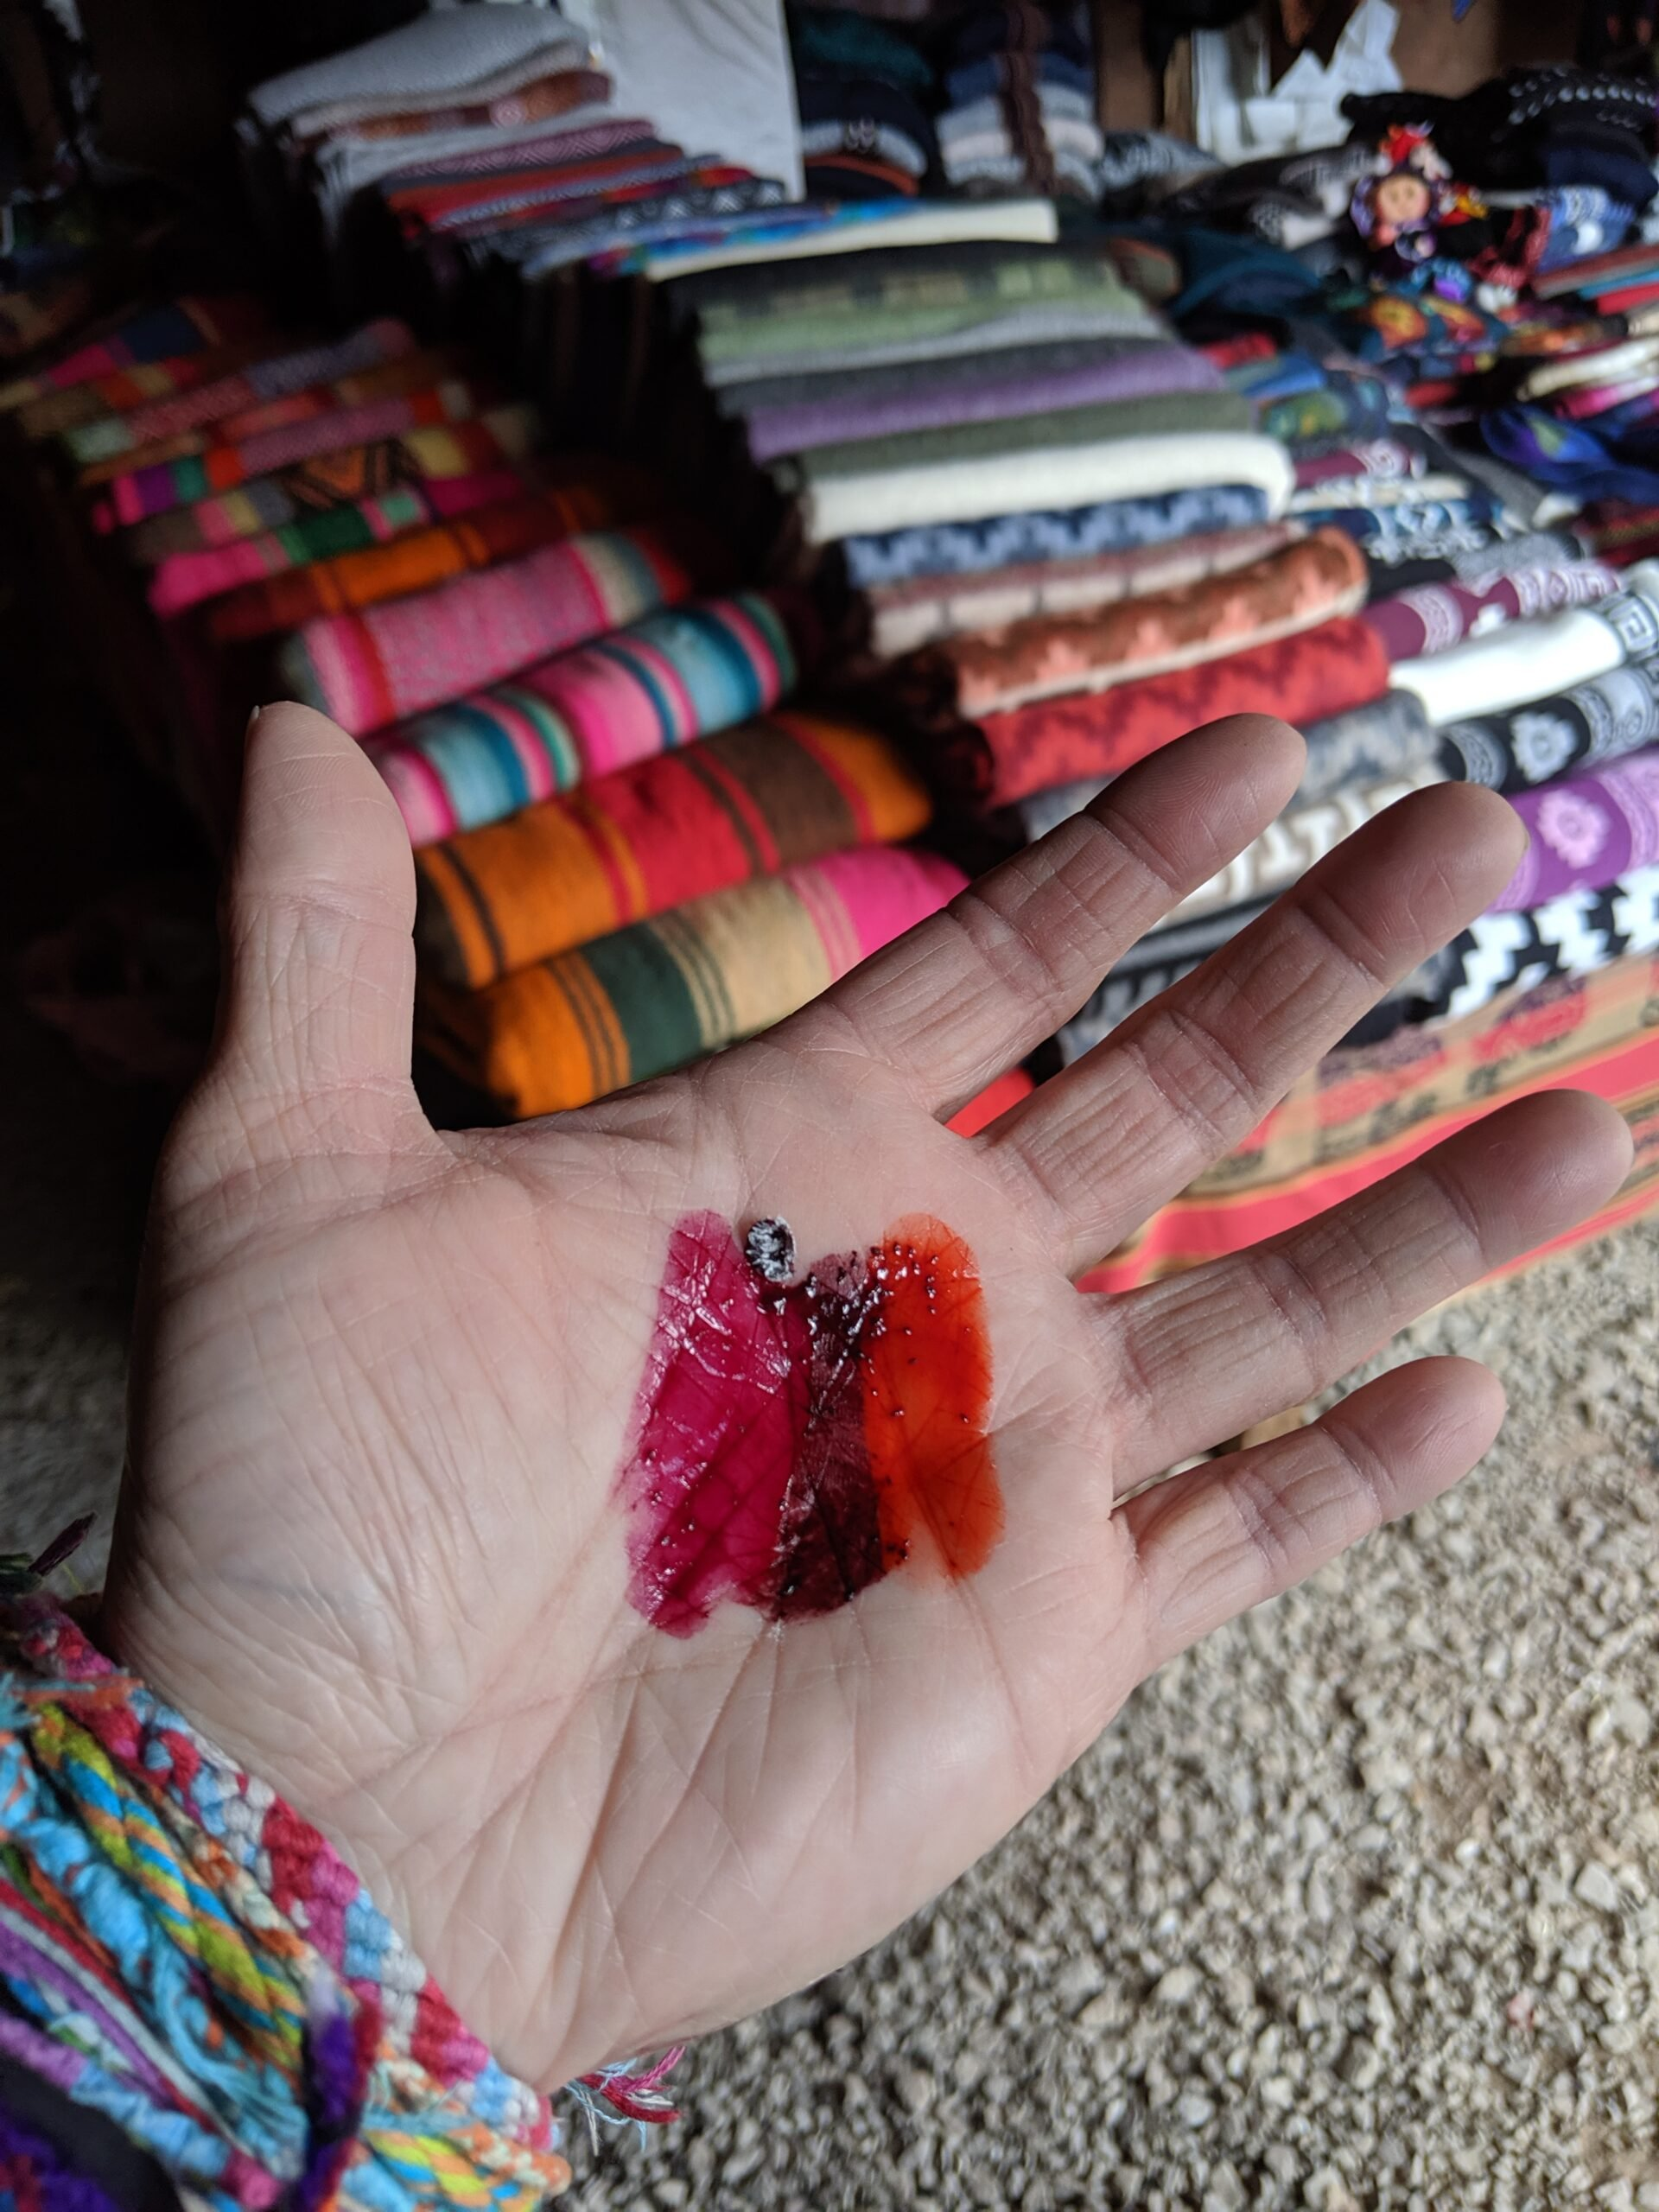 Close-up of a tourist hand showing different dyes used for dying textiles.